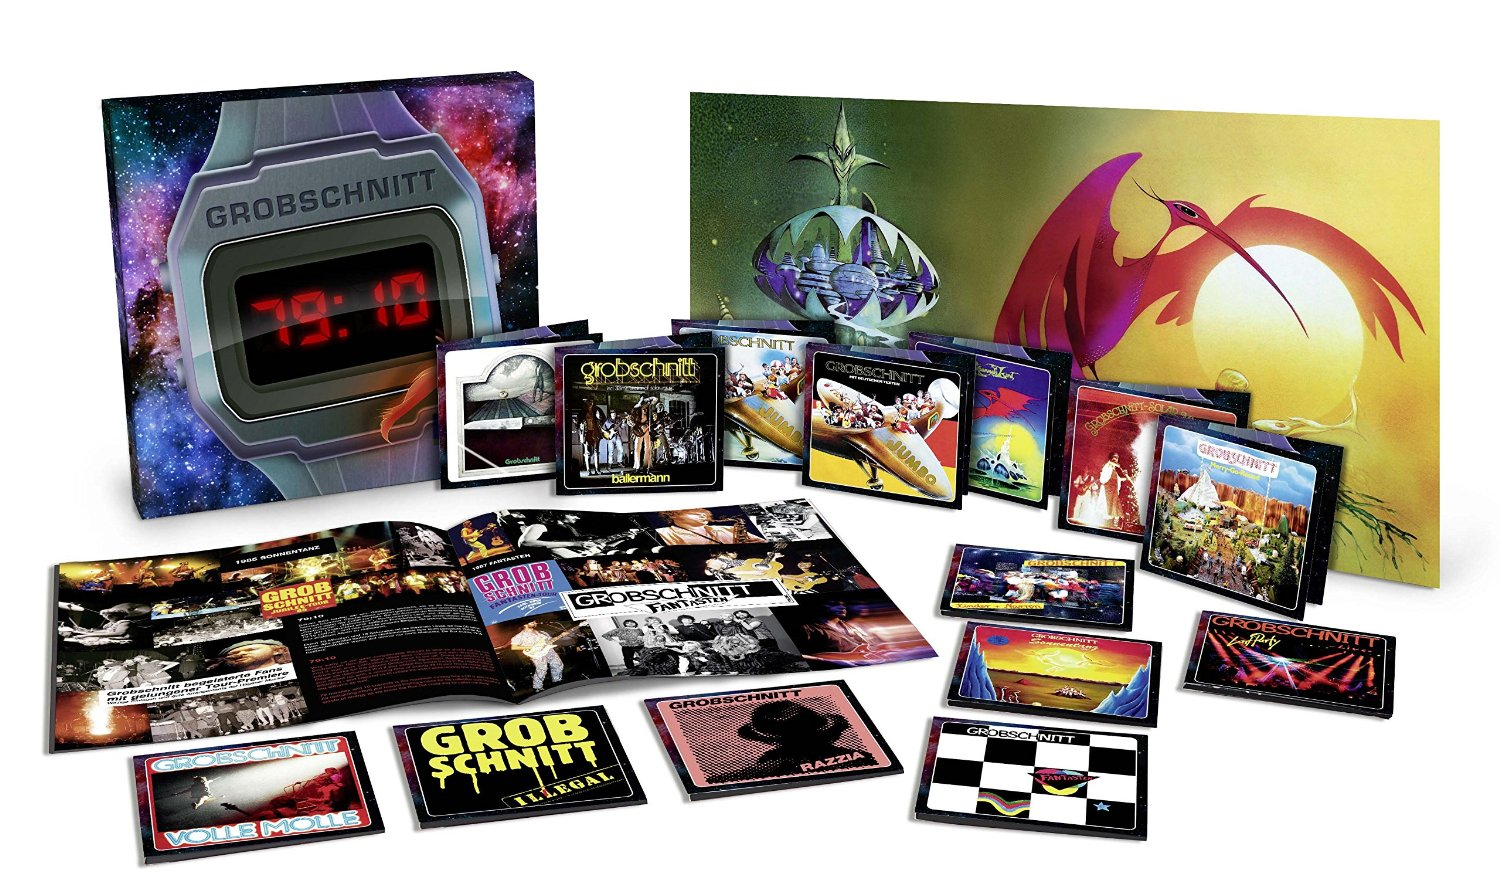 Grobschnitt / 79:10 limited edition box set